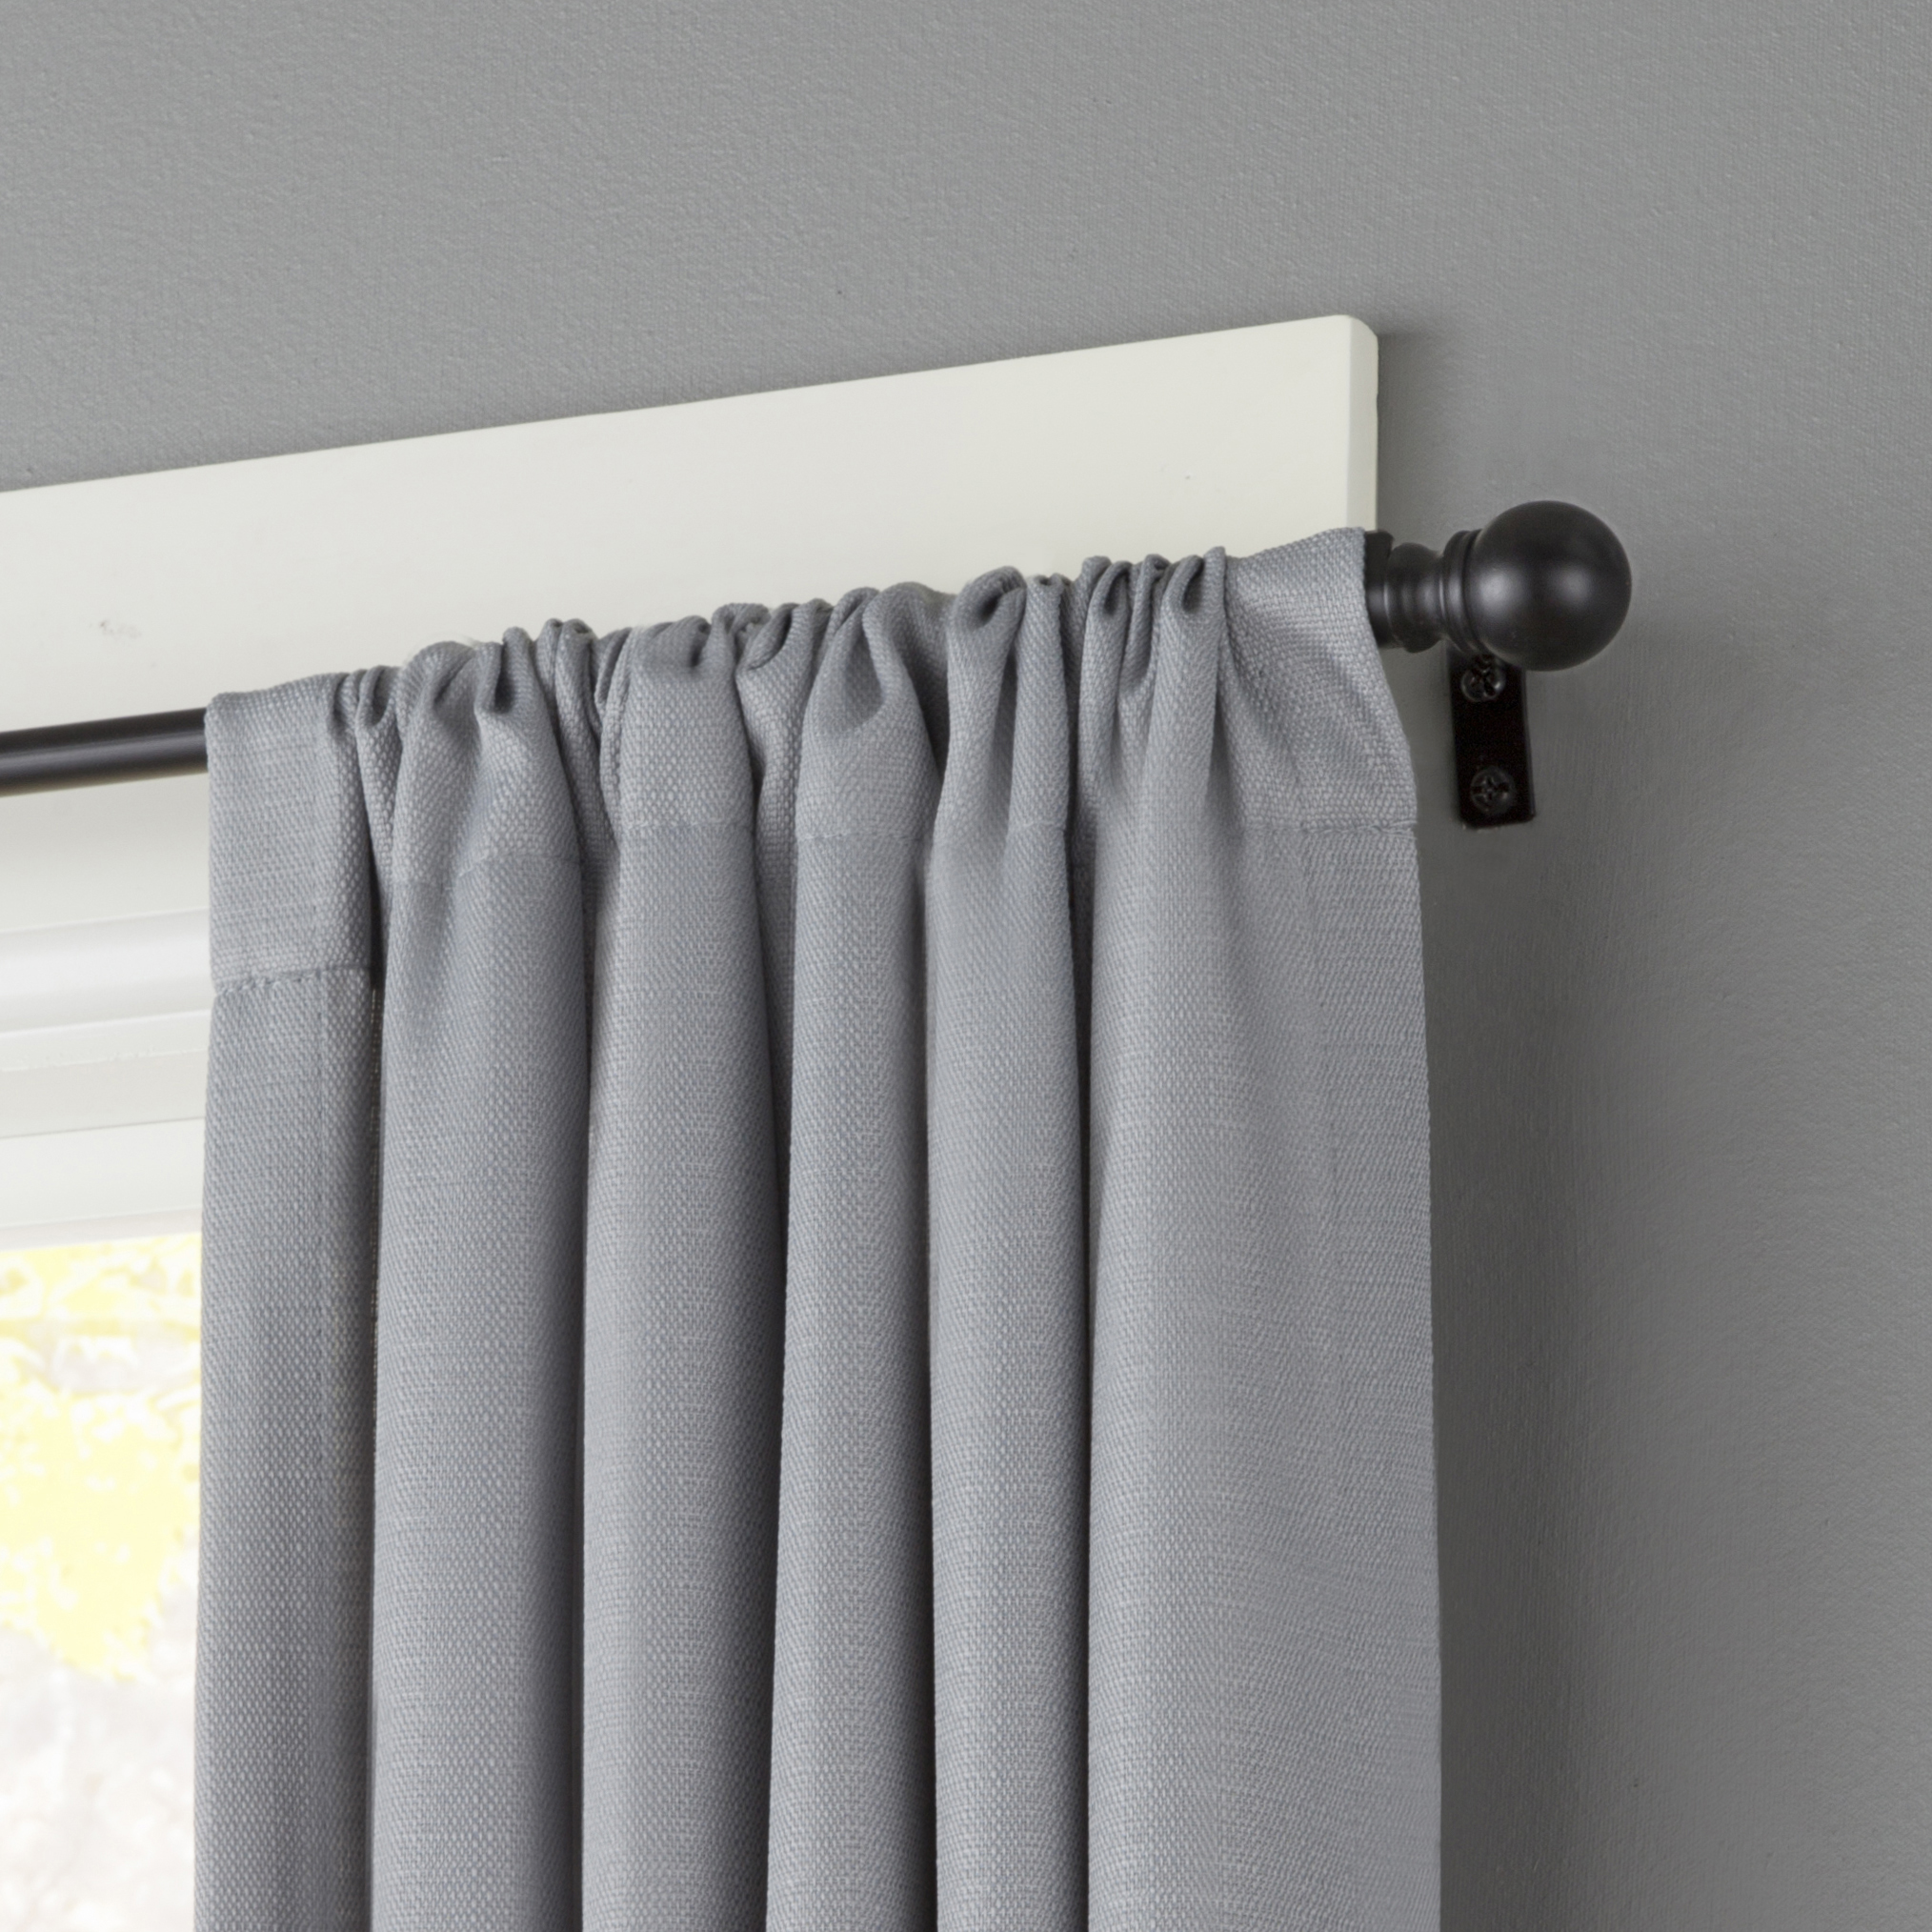 Kenney Davenport 1 2 Pee Cafe Decorative Window Curtain Rod 28 48 Matte Black